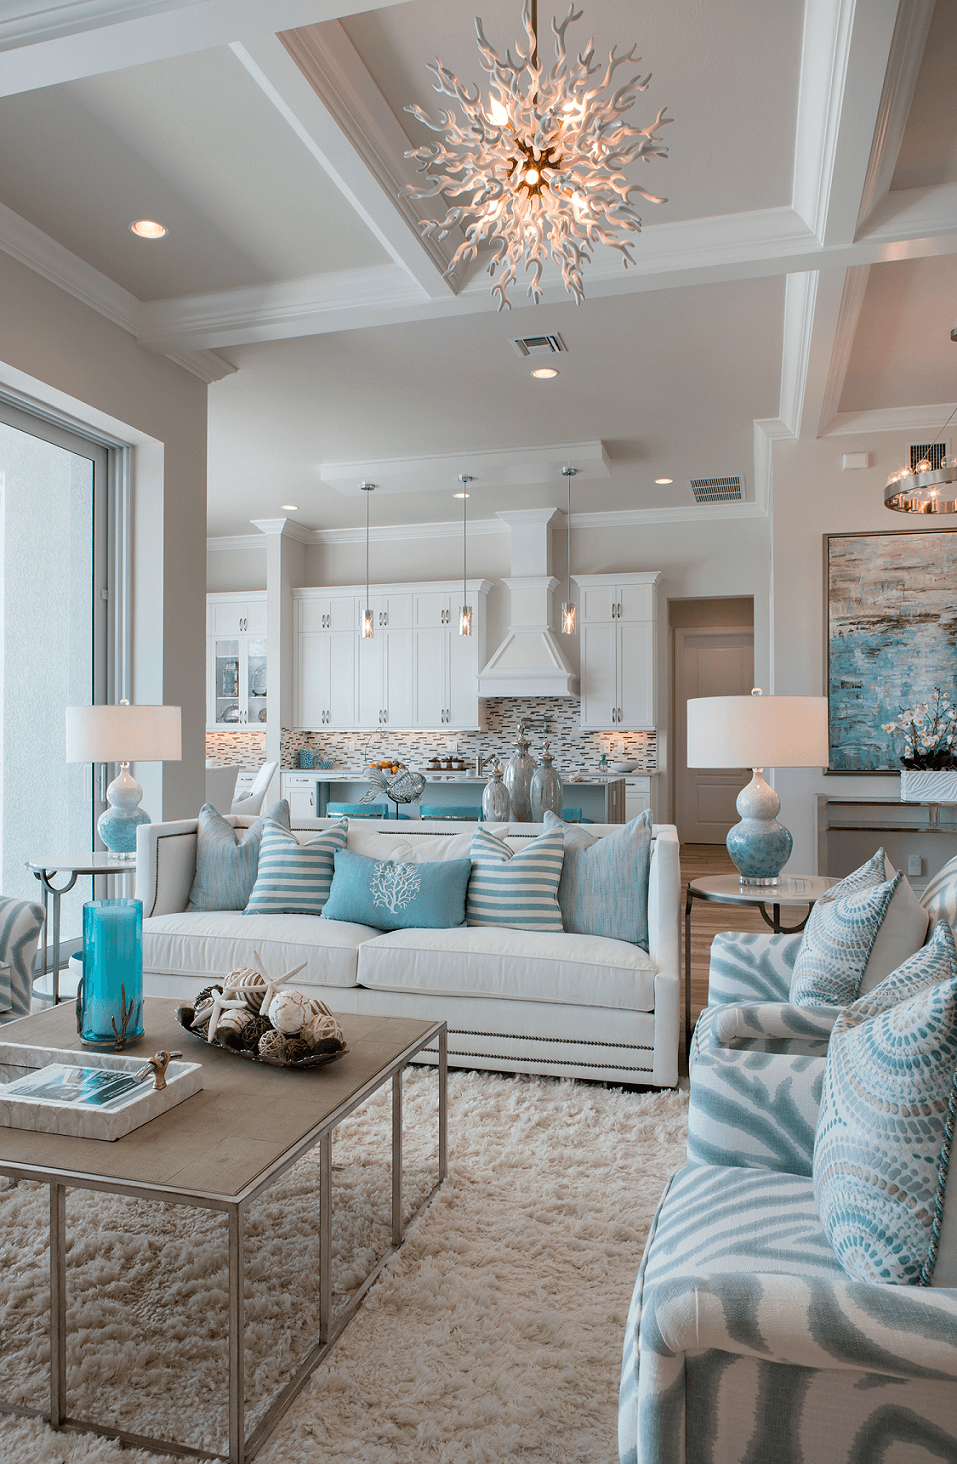 Coastal Decorating Ideas with Turquoise Accents : coastal themed decorating ideas - www.pureclipart.com